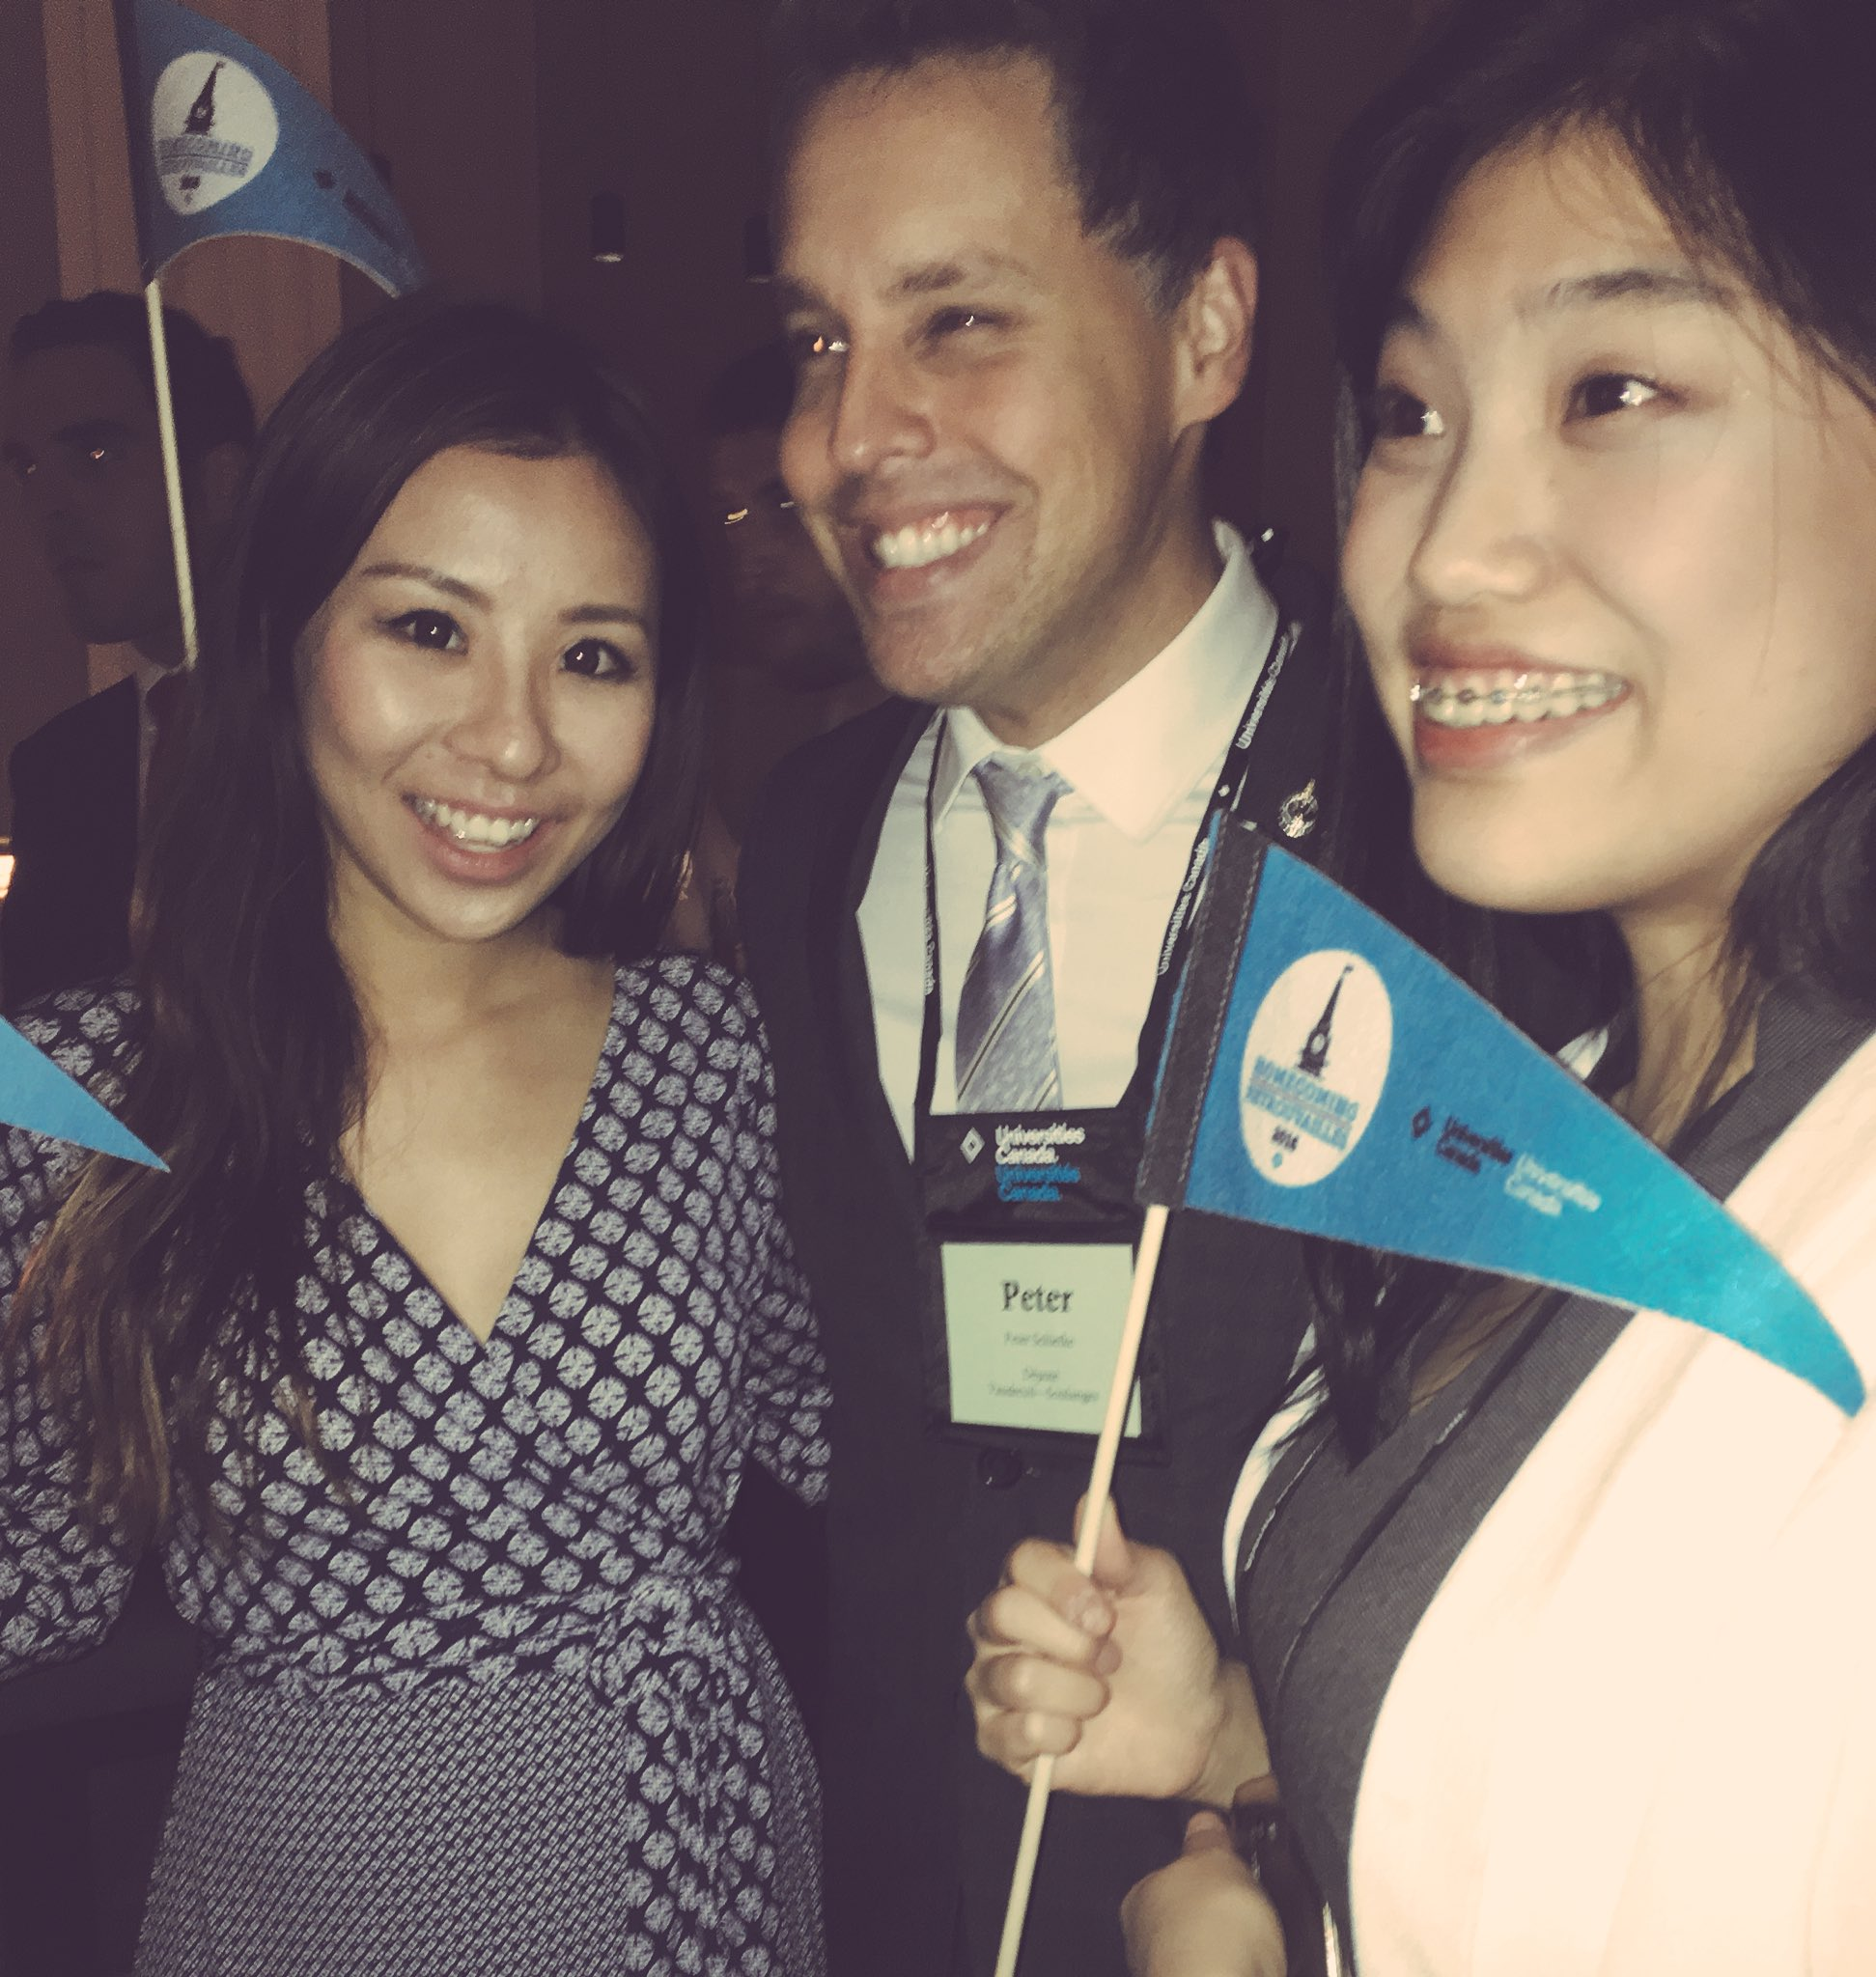 Thanks for being here @PeterSchiefke, Dayeon and @crystalgao , two exceptional #tdscholars at #Homecoming2016 #retrouvailles2016 https://t.co/yRMpdCZ59Q